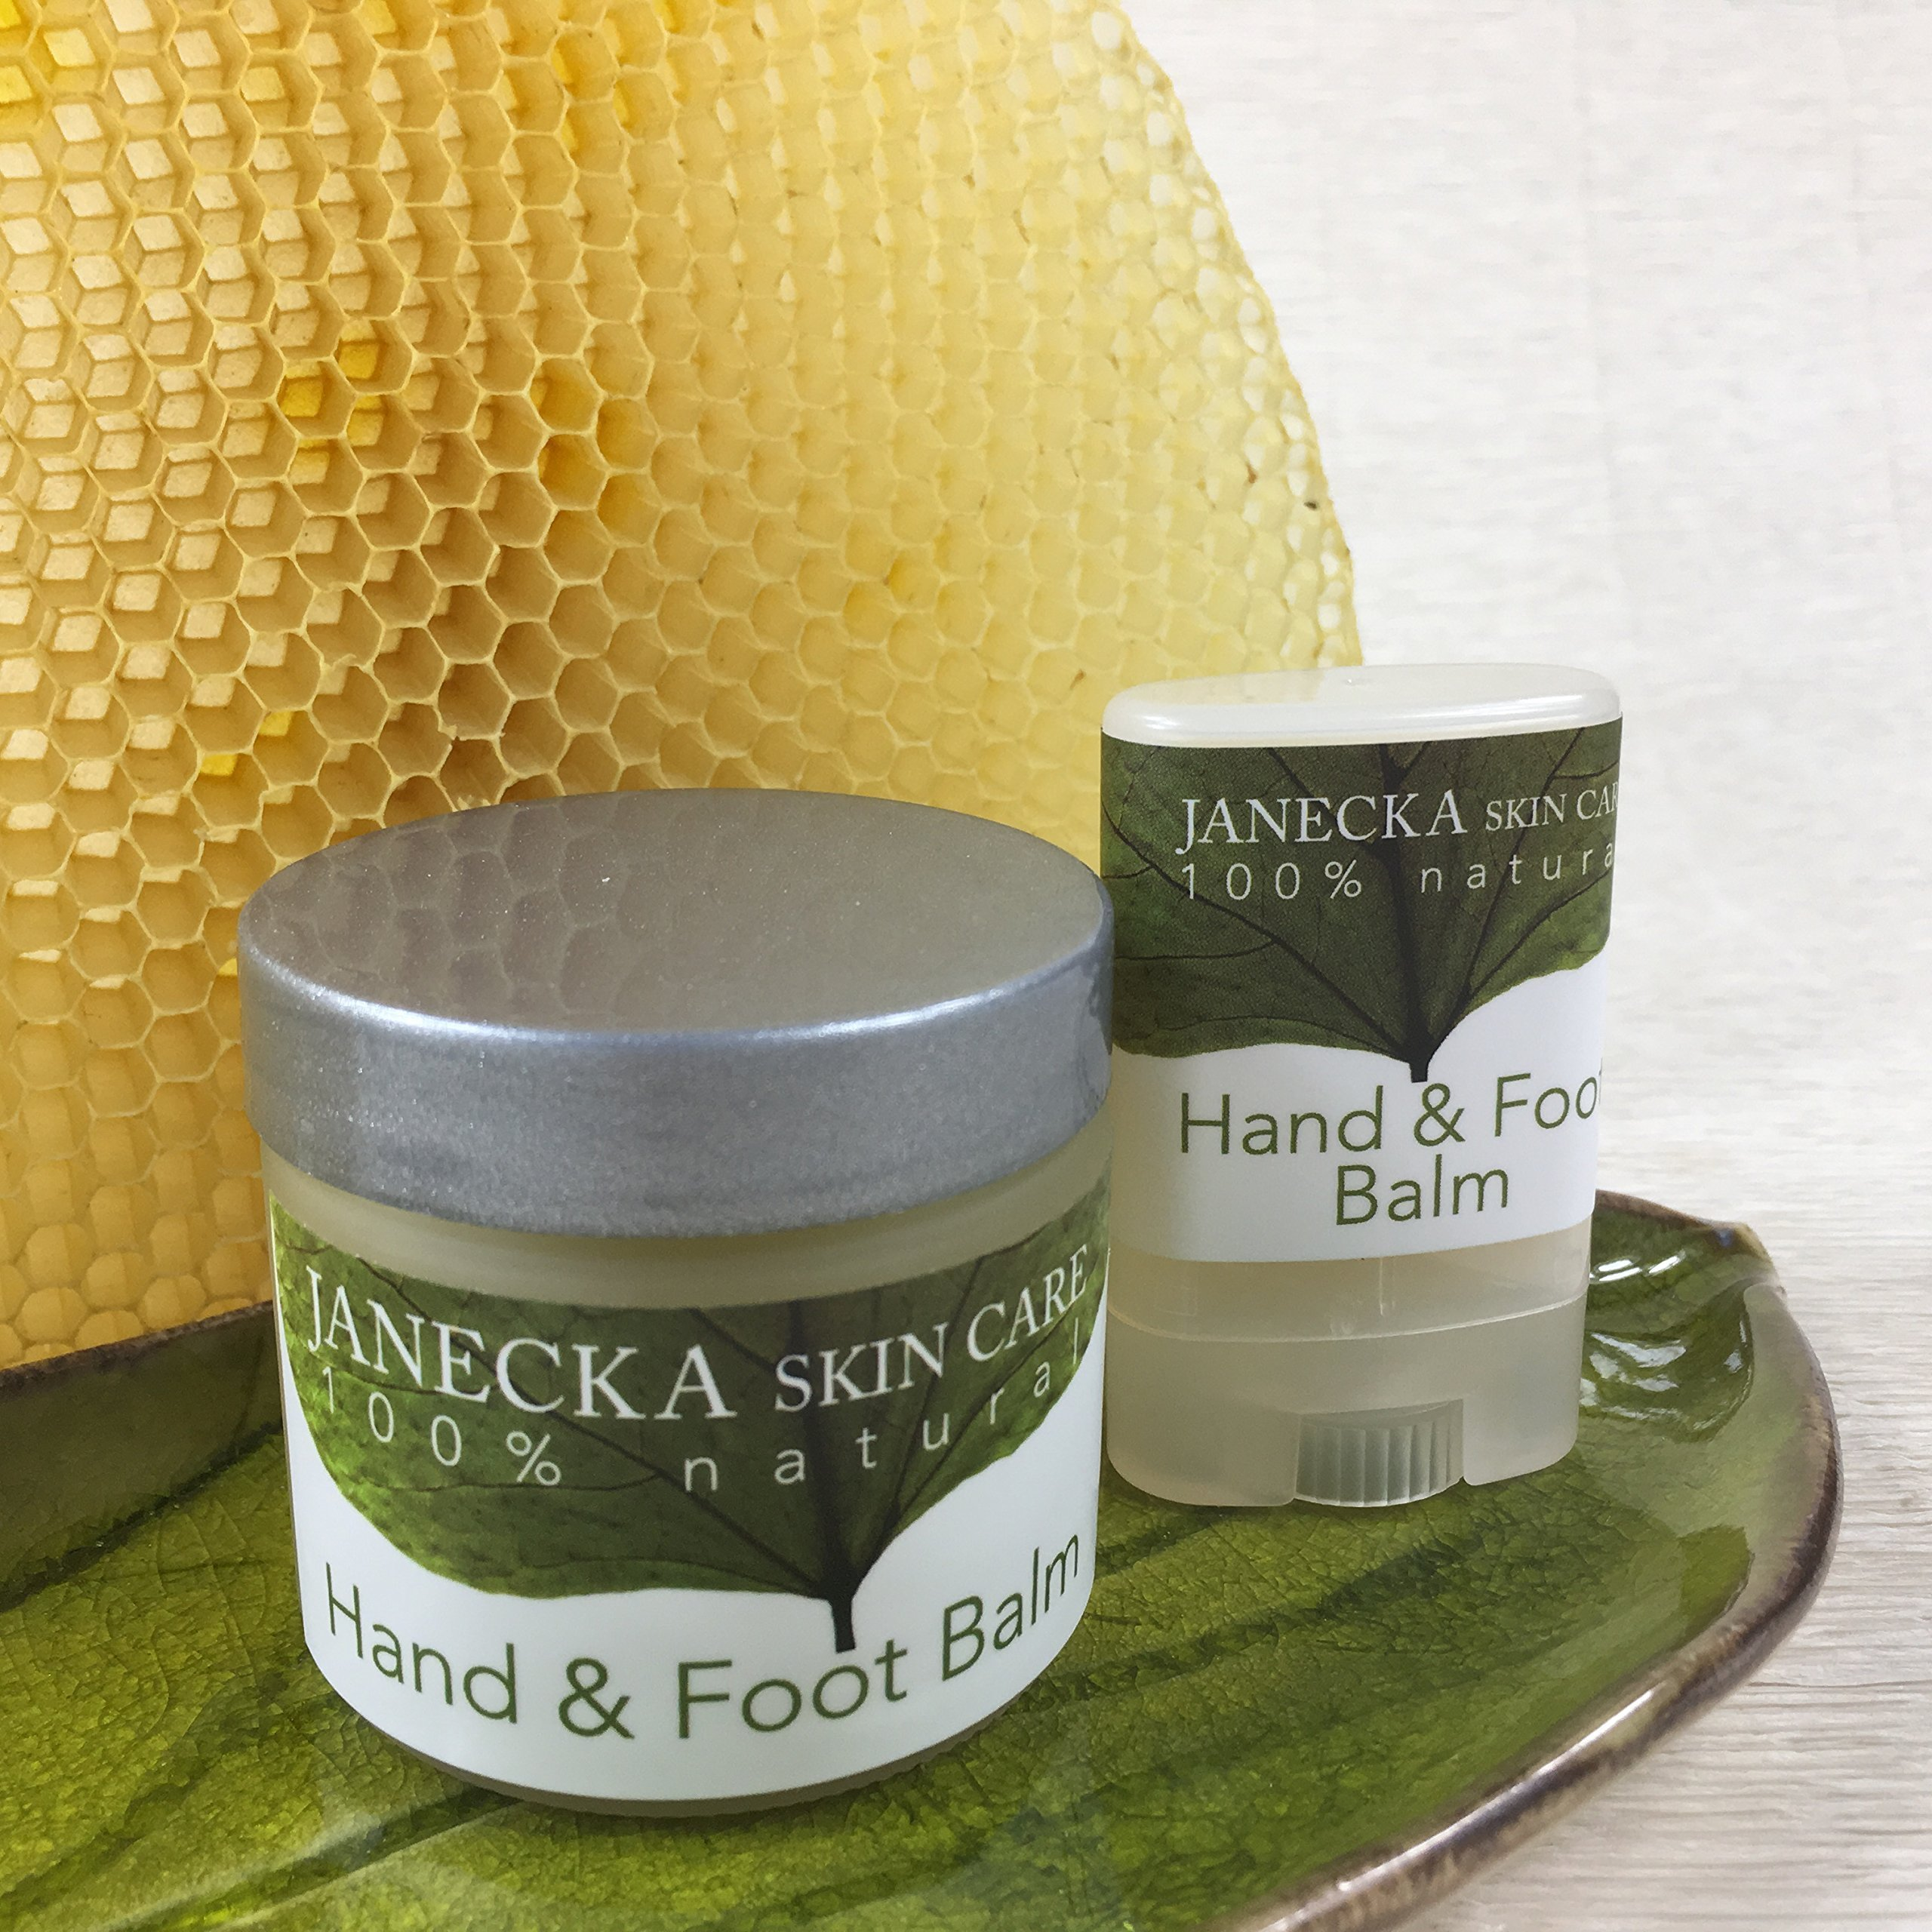 JANECKA Hand & Foot Balm ( 2 oz Jar and .35 oz Travel Size ) Excellent for eczema and psoriasis.